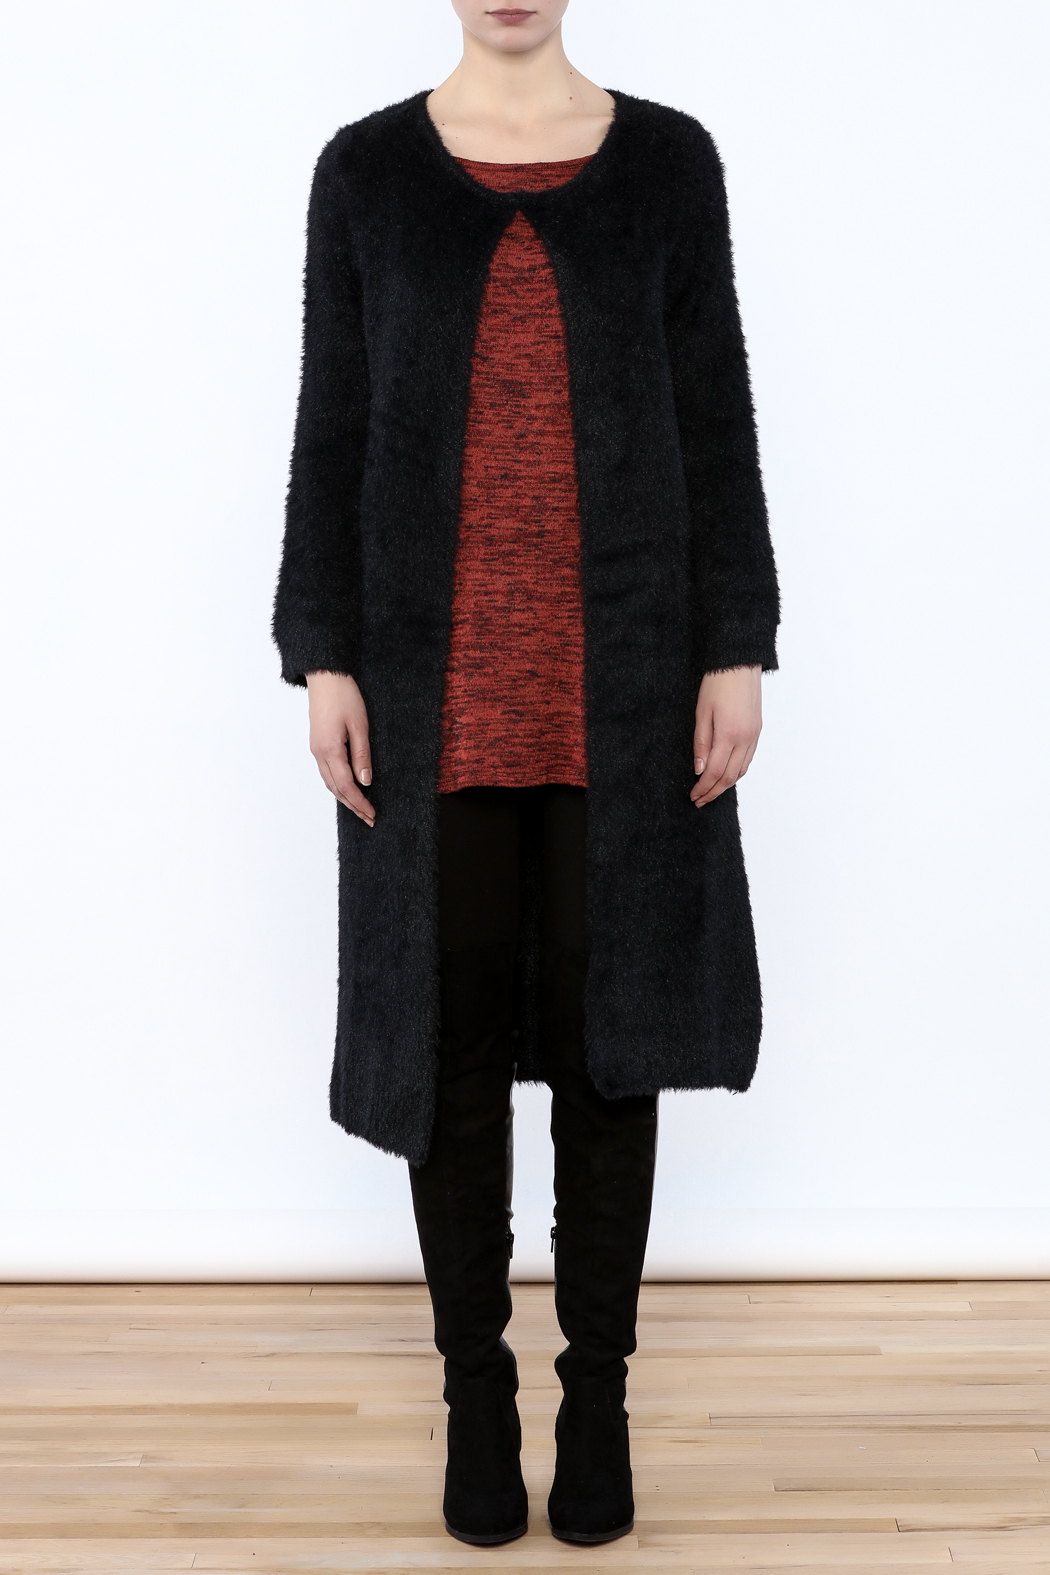 "Knitwear for Tall Women | Long Tall Sally US5'8"" and Above · Specialists in Tall Fit · Free Shipping Over $30 · Large Size Women Footwear/10 (8, reviews)."